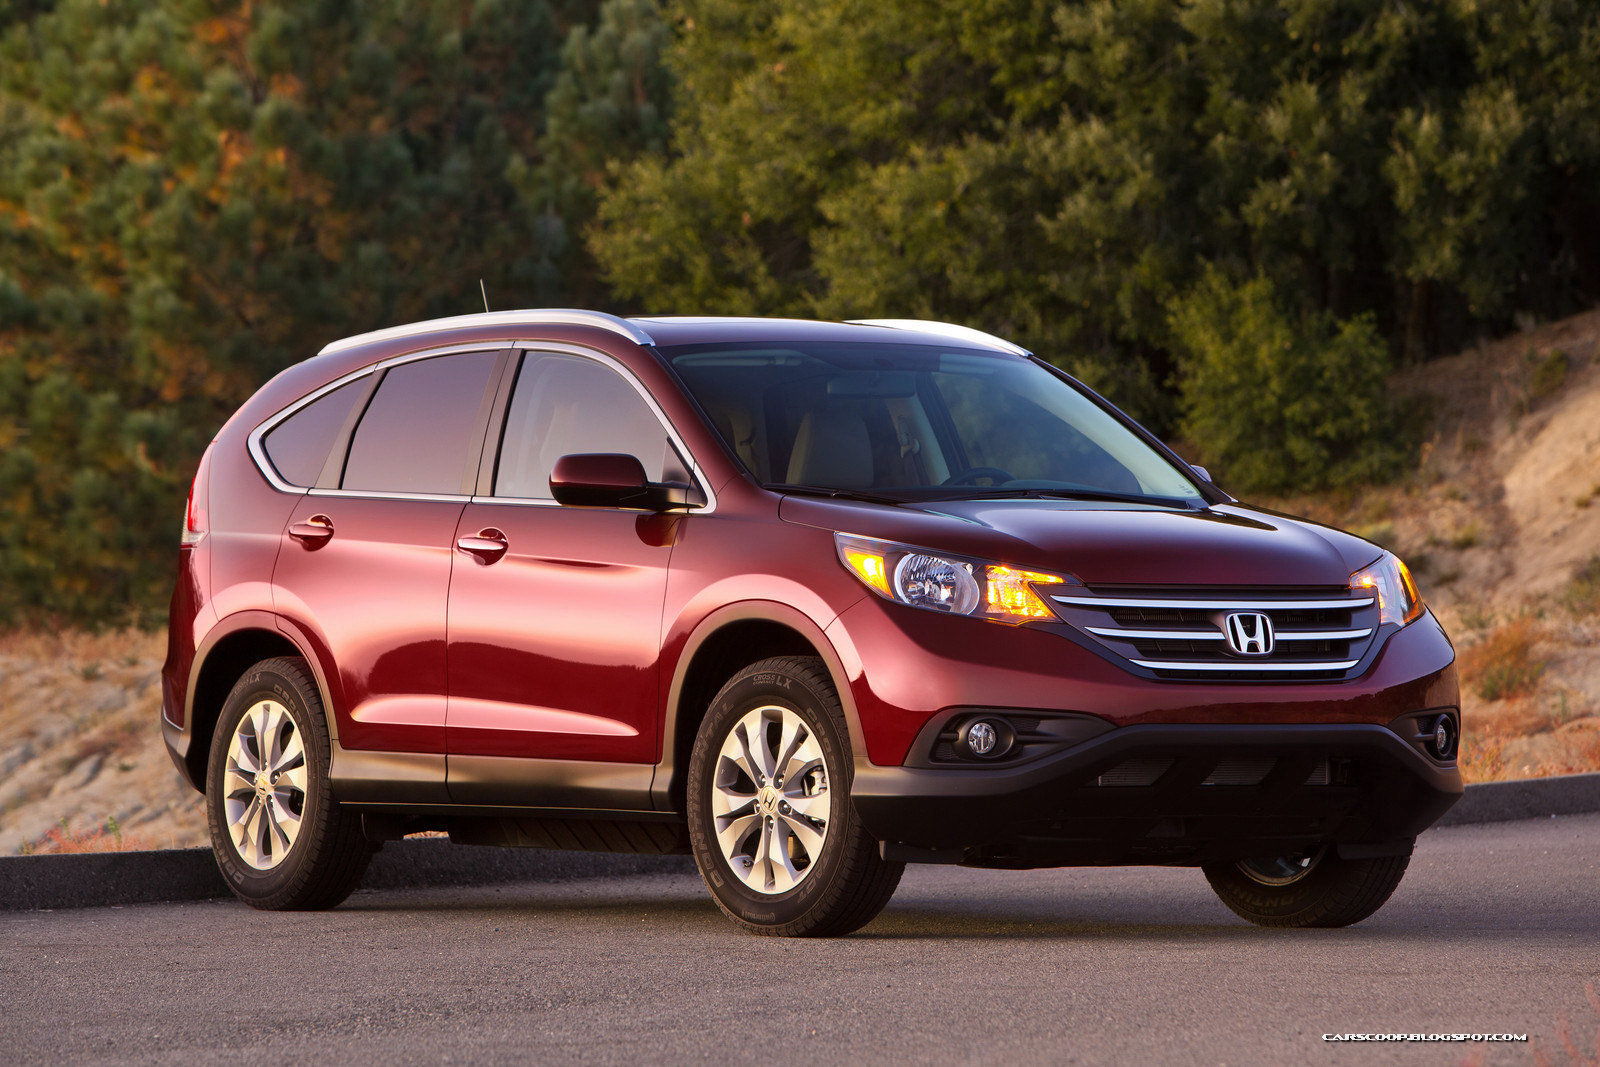 2012 honda cr v price 21 000